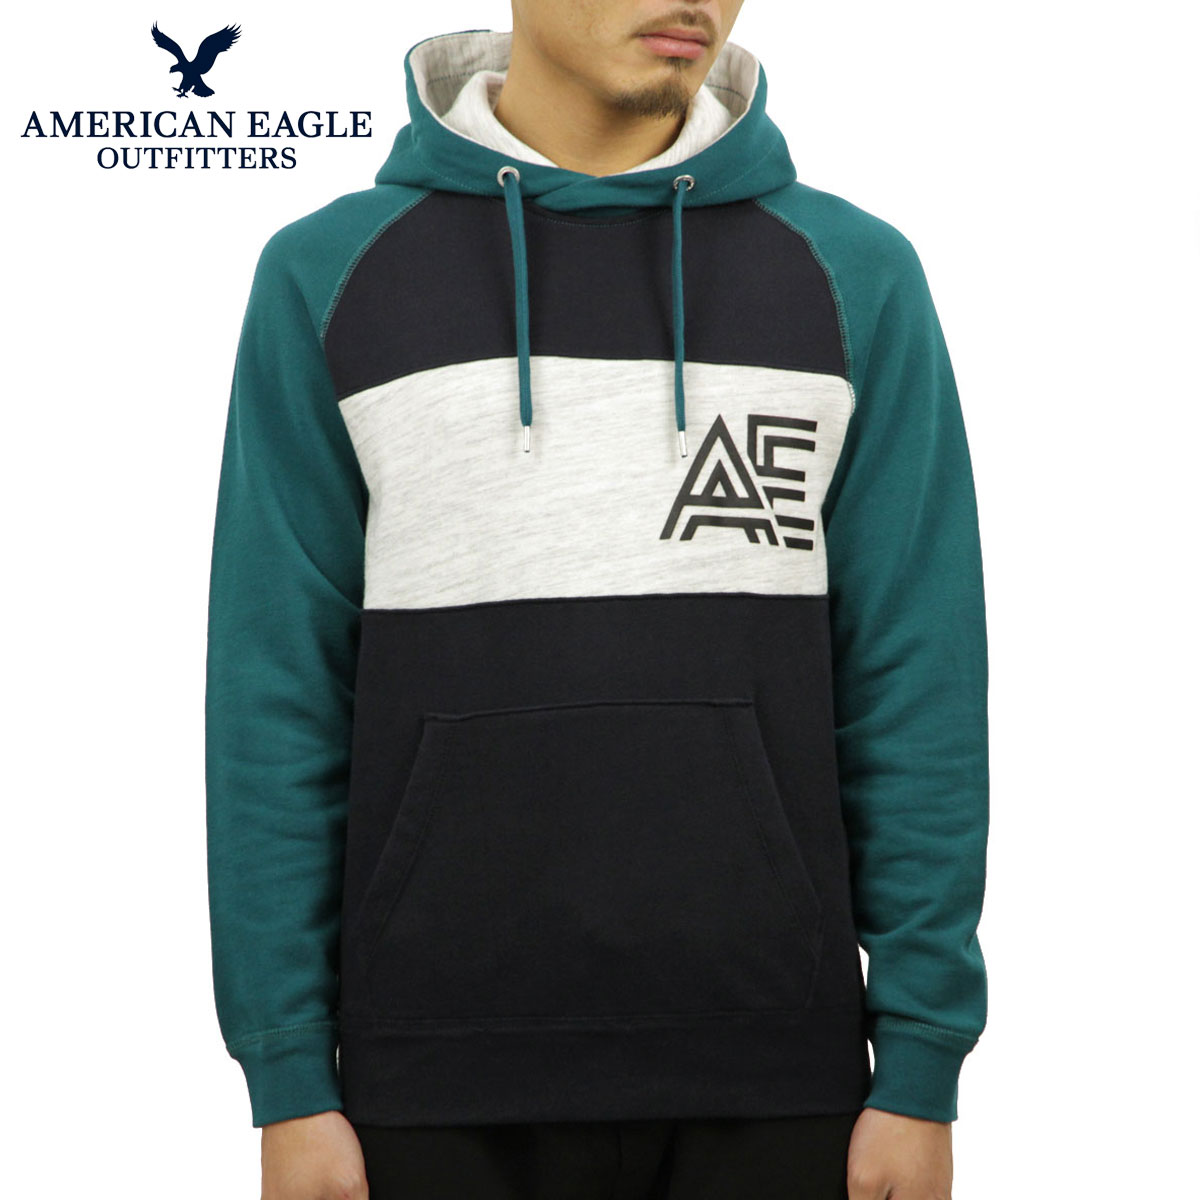 14cdc941bfd American eagle AMERICAN EAGLE regular article men pullover parka AE  COLORBLOCK THROWBACK COTTON SWEATSHIRT 0193-9818-395